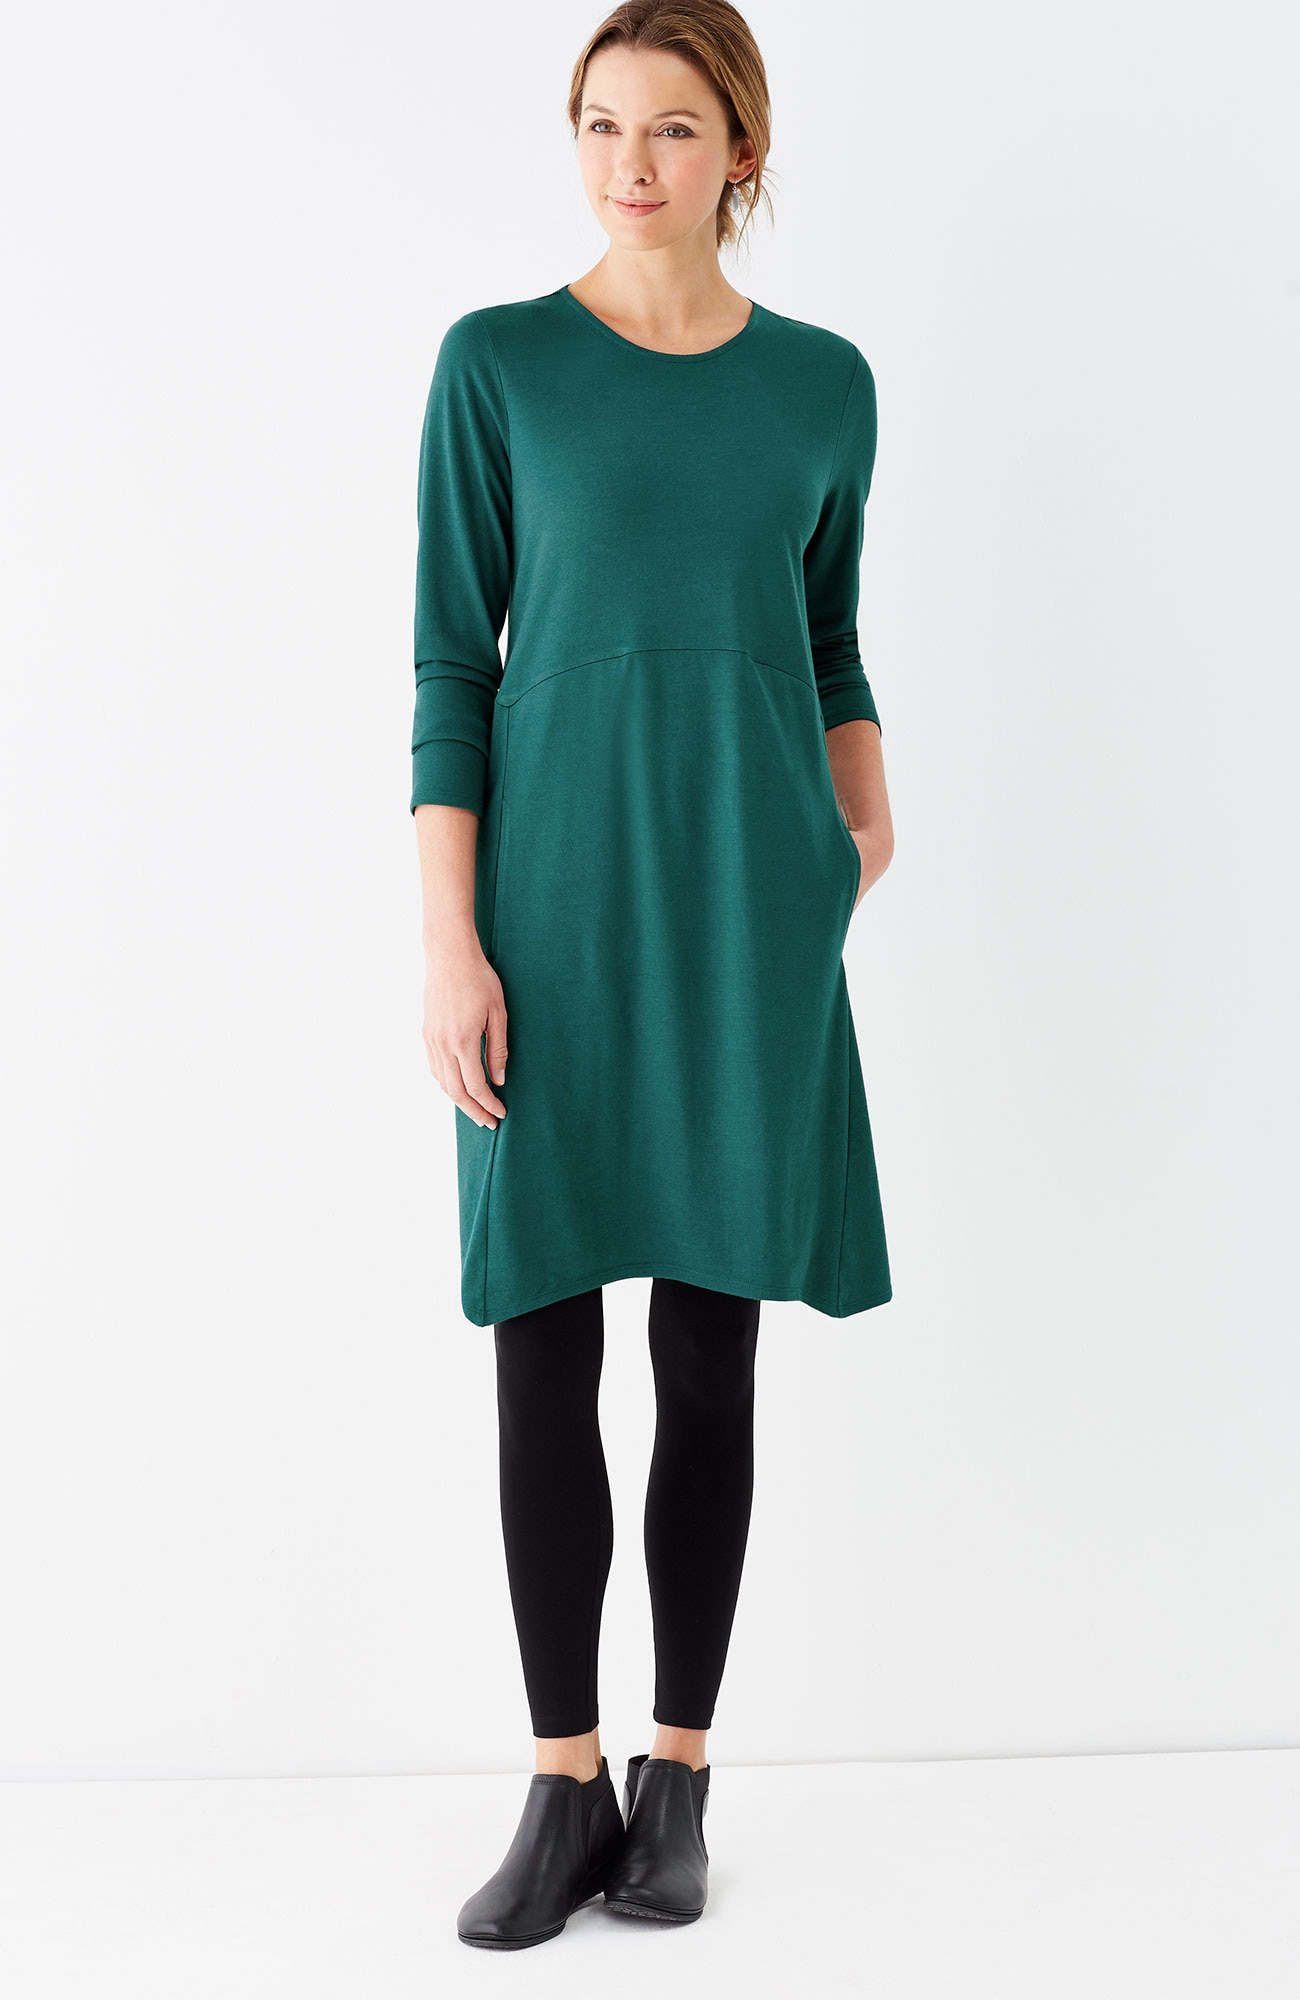 Pure Jill dipped-hem swing dress